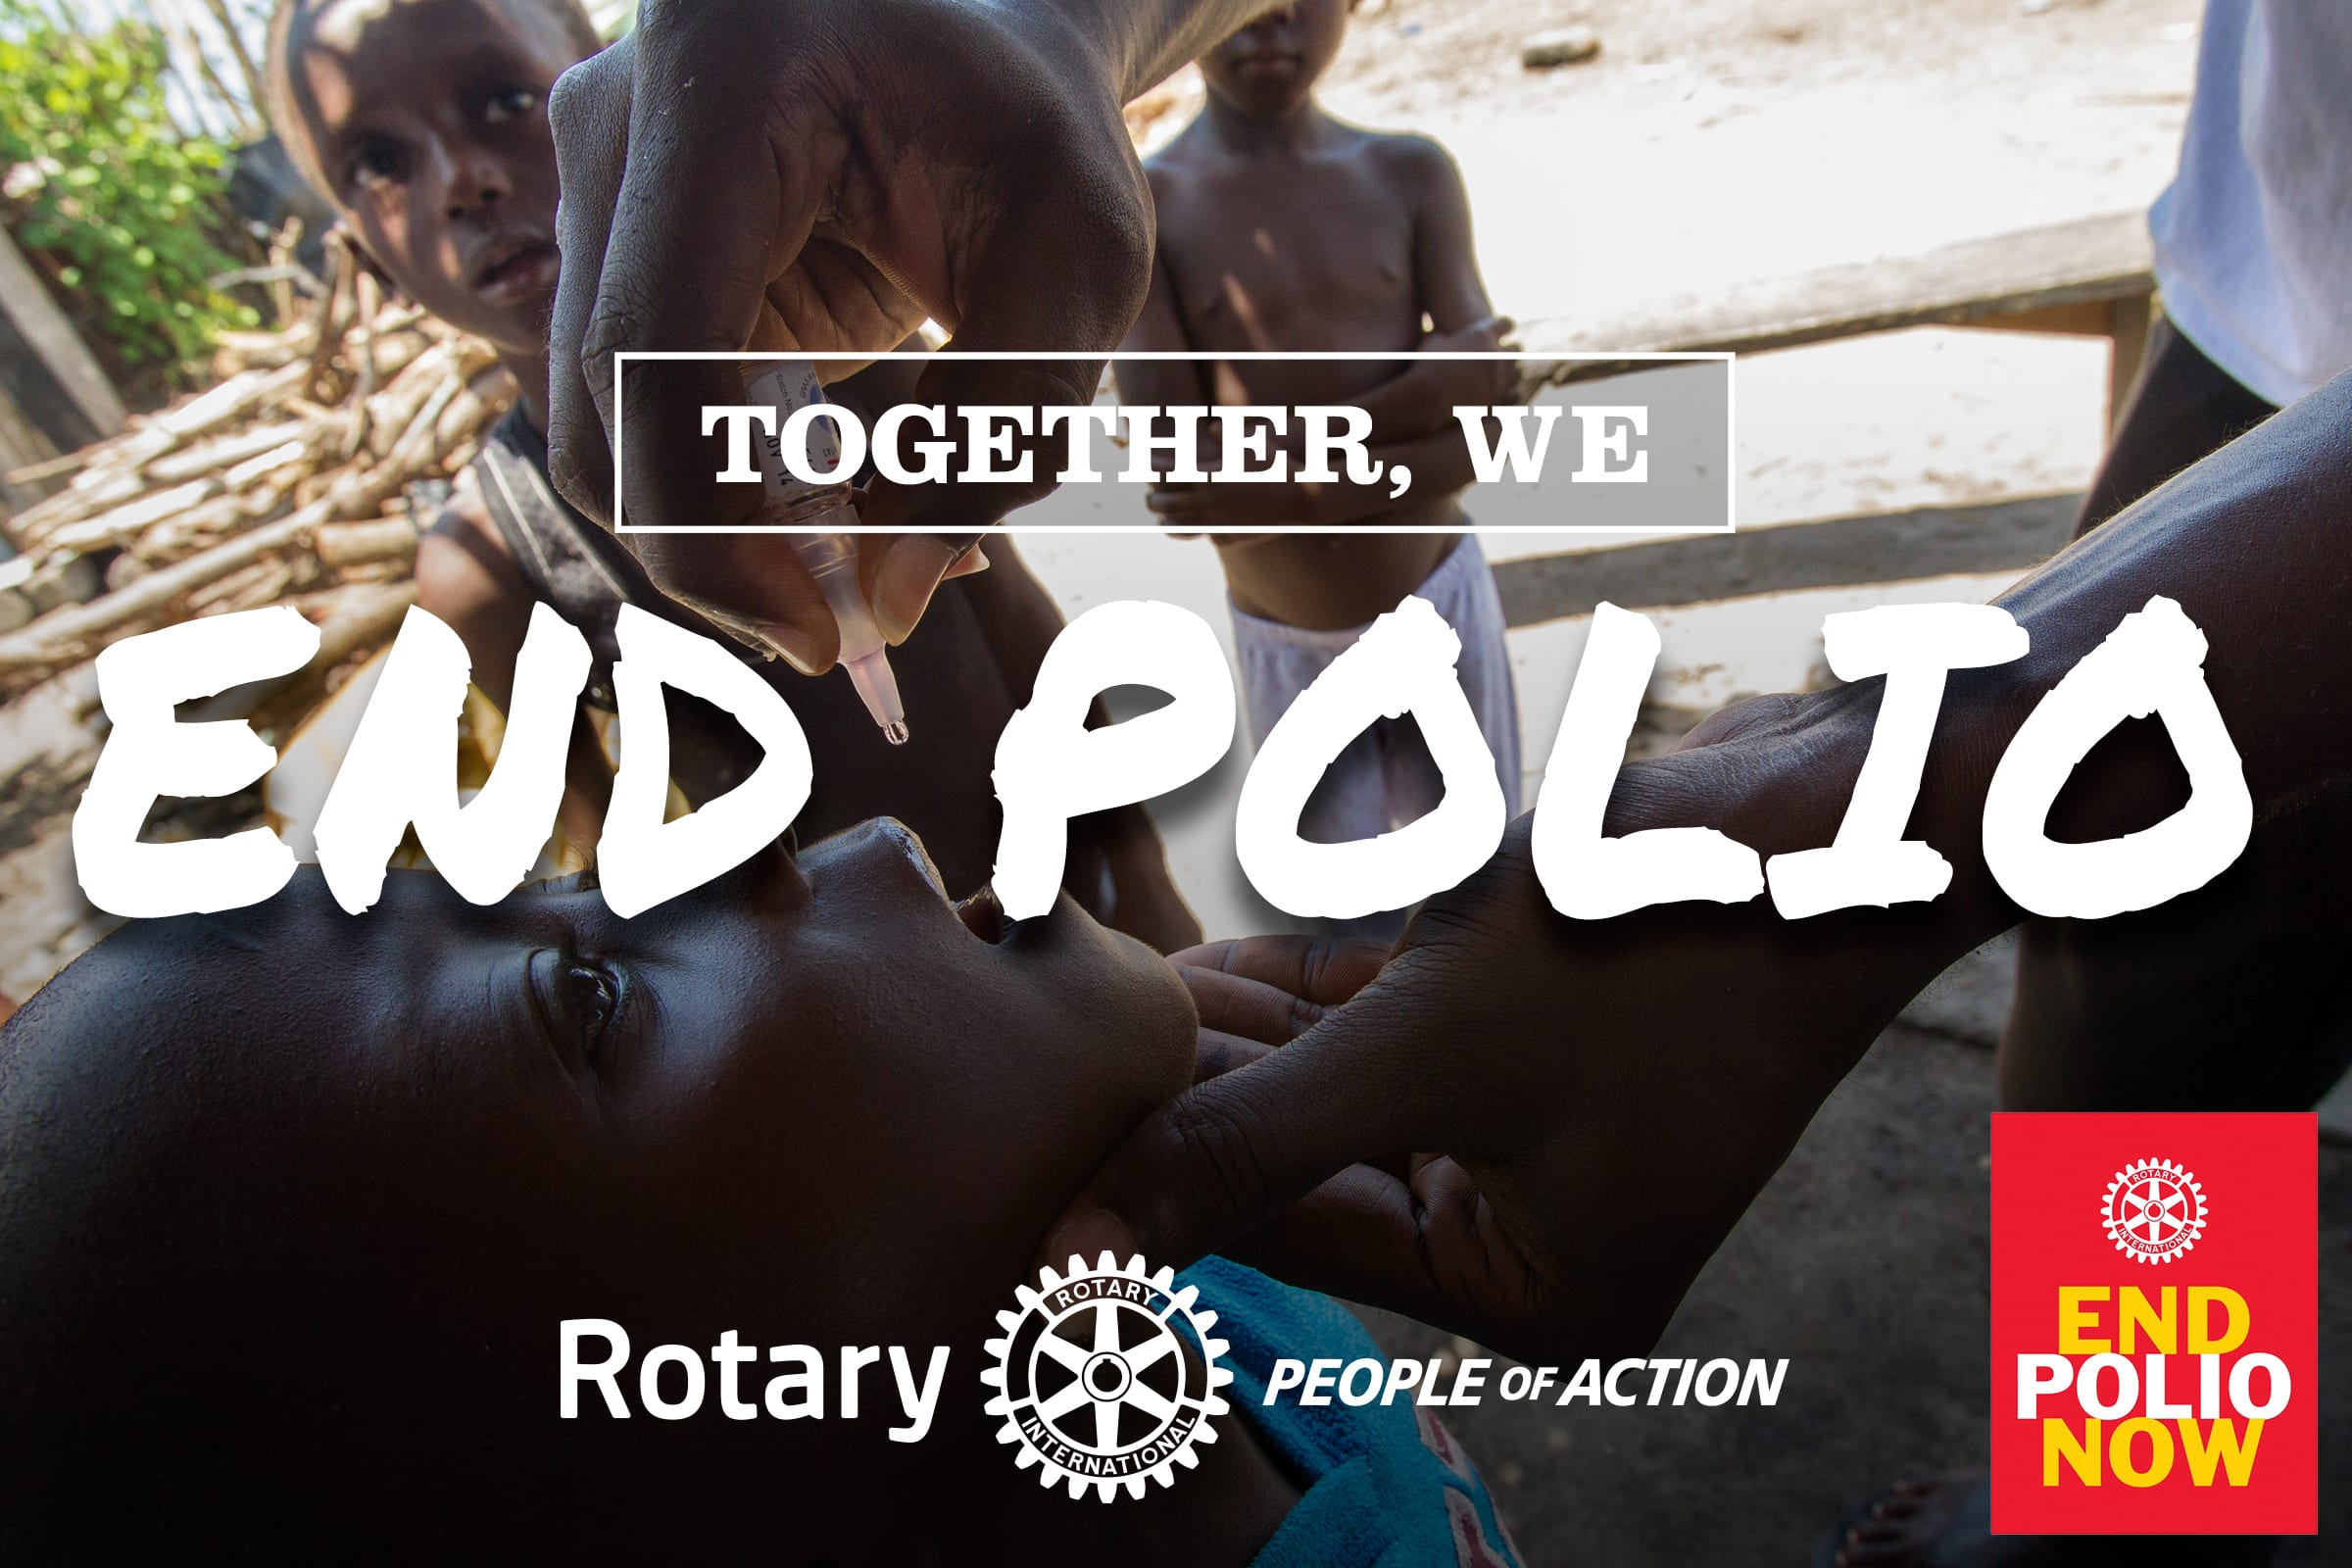 October 24th is World Polio Day | EndPolioNow.org